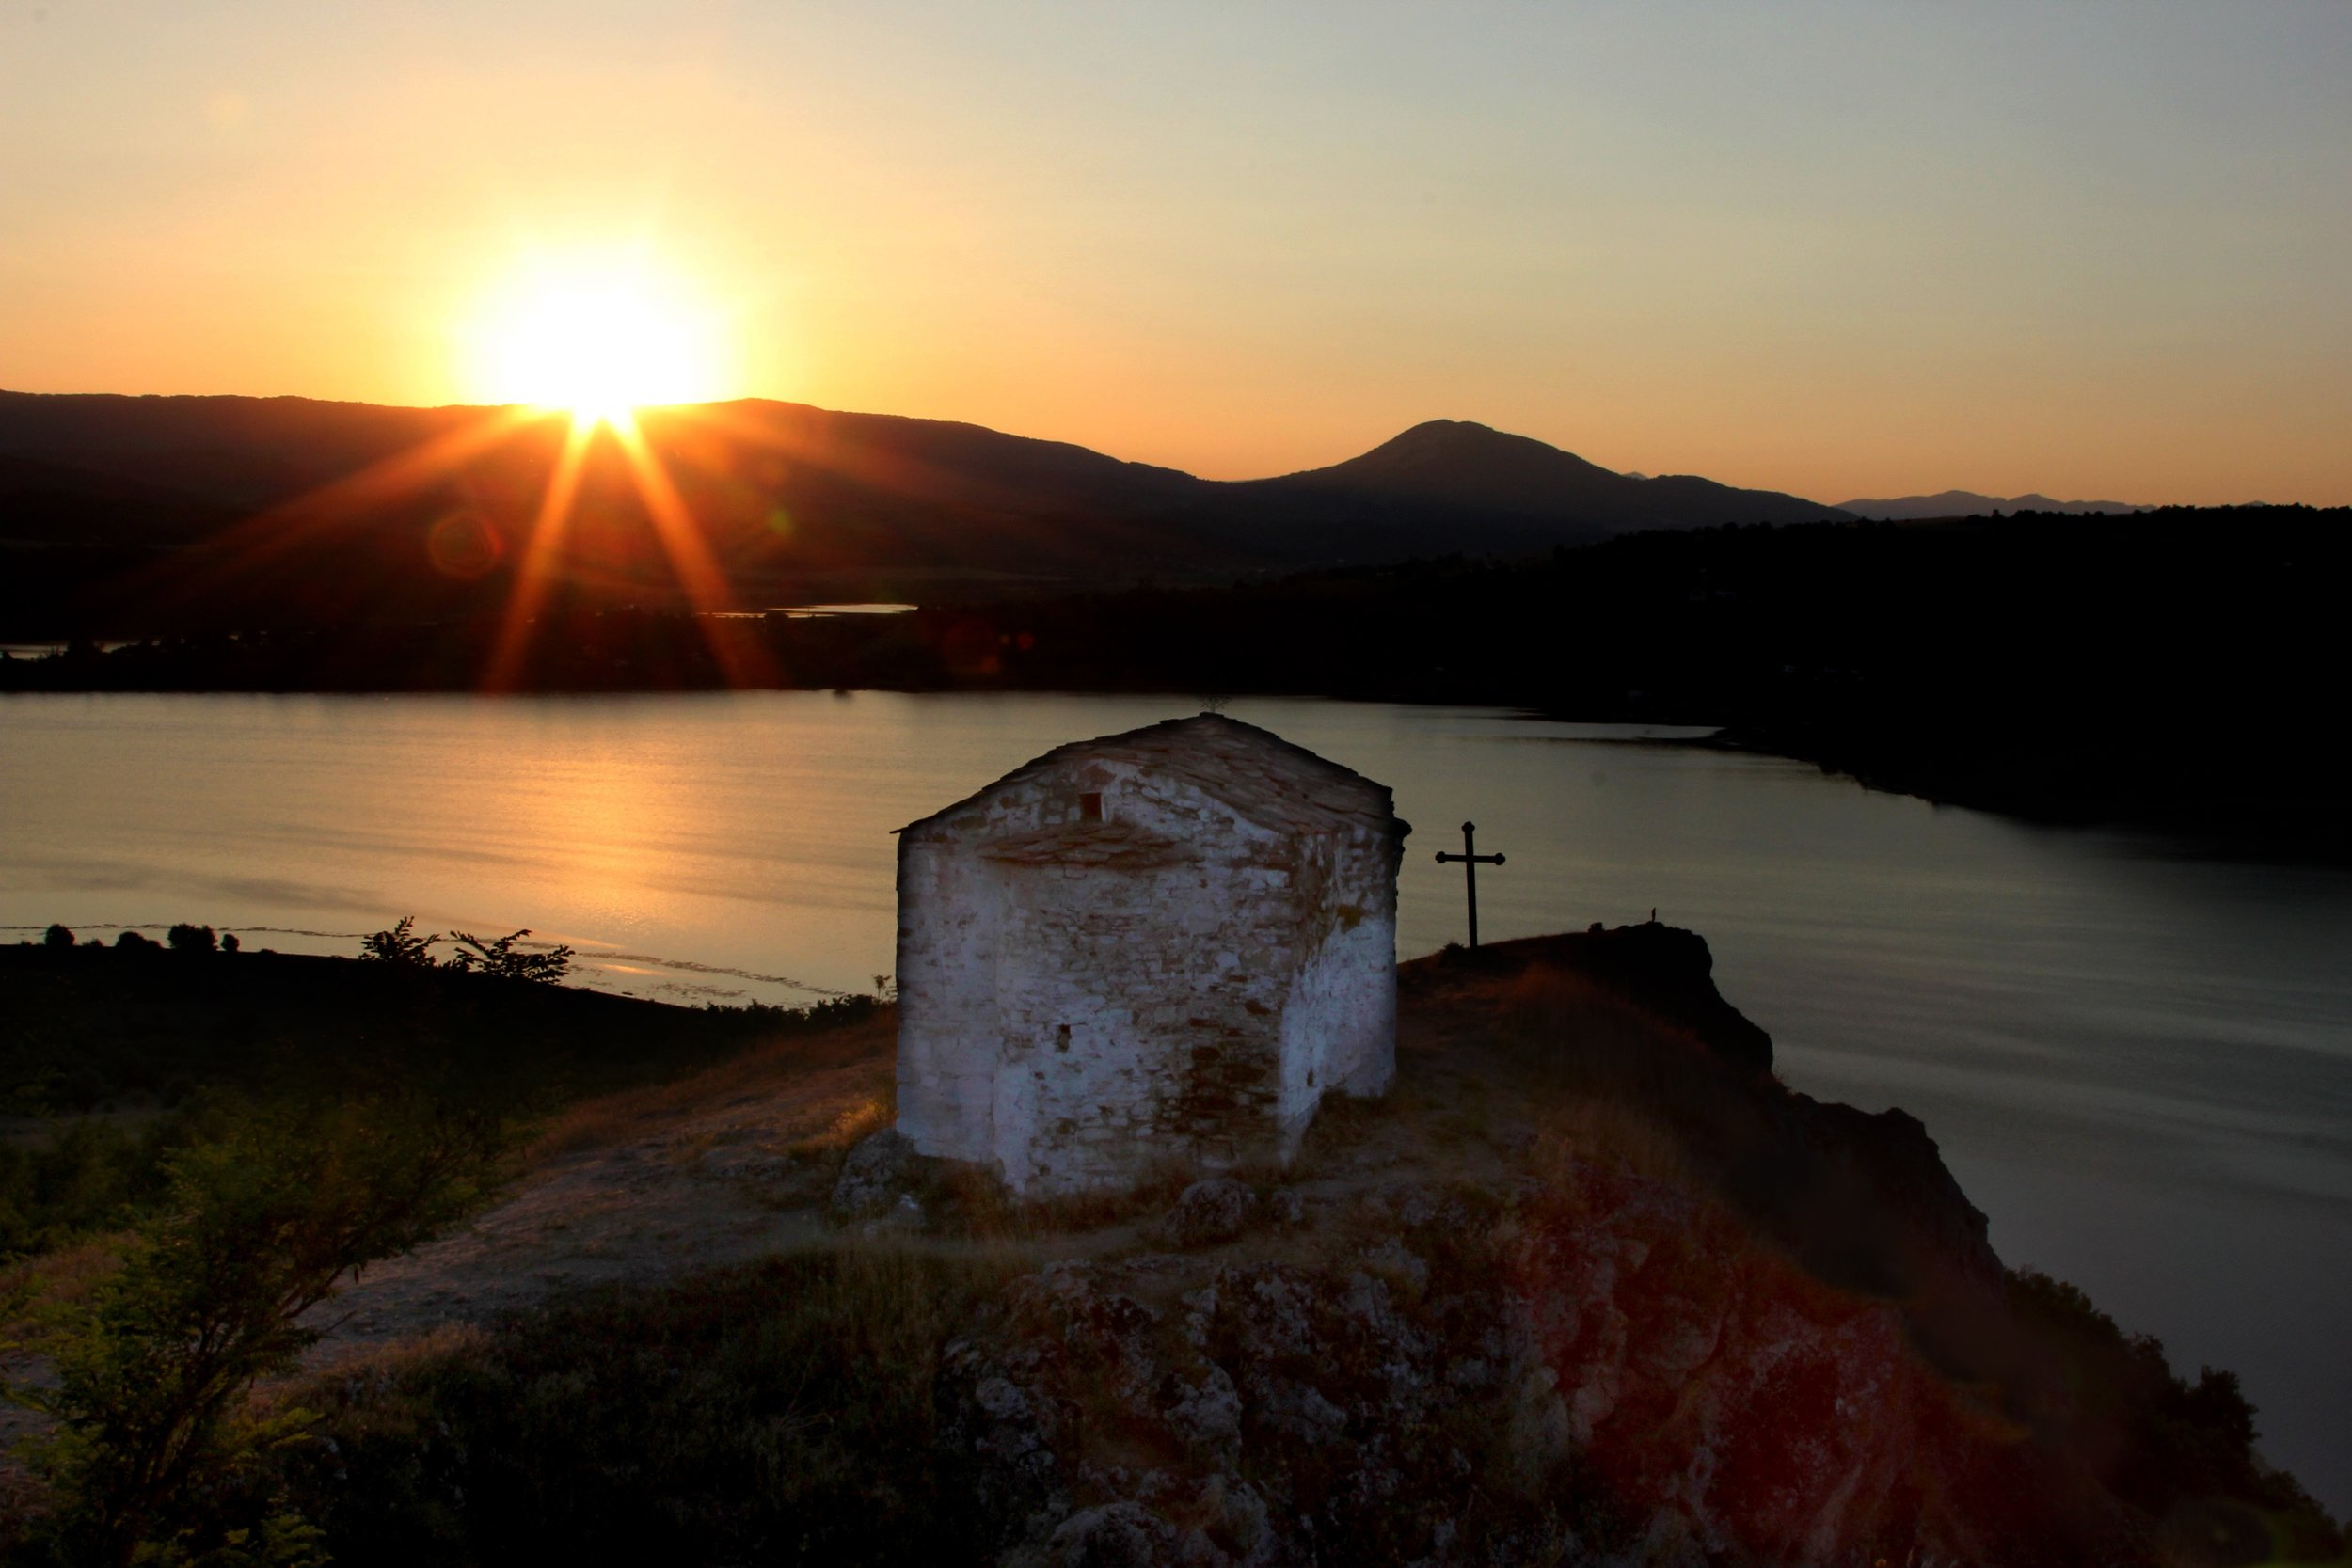 ancient-chapel-pchelina-dam-sunset-stioanletni-sunburst-cross-still-water-southloop-phototour-bulgaria-barb-2016.jpg